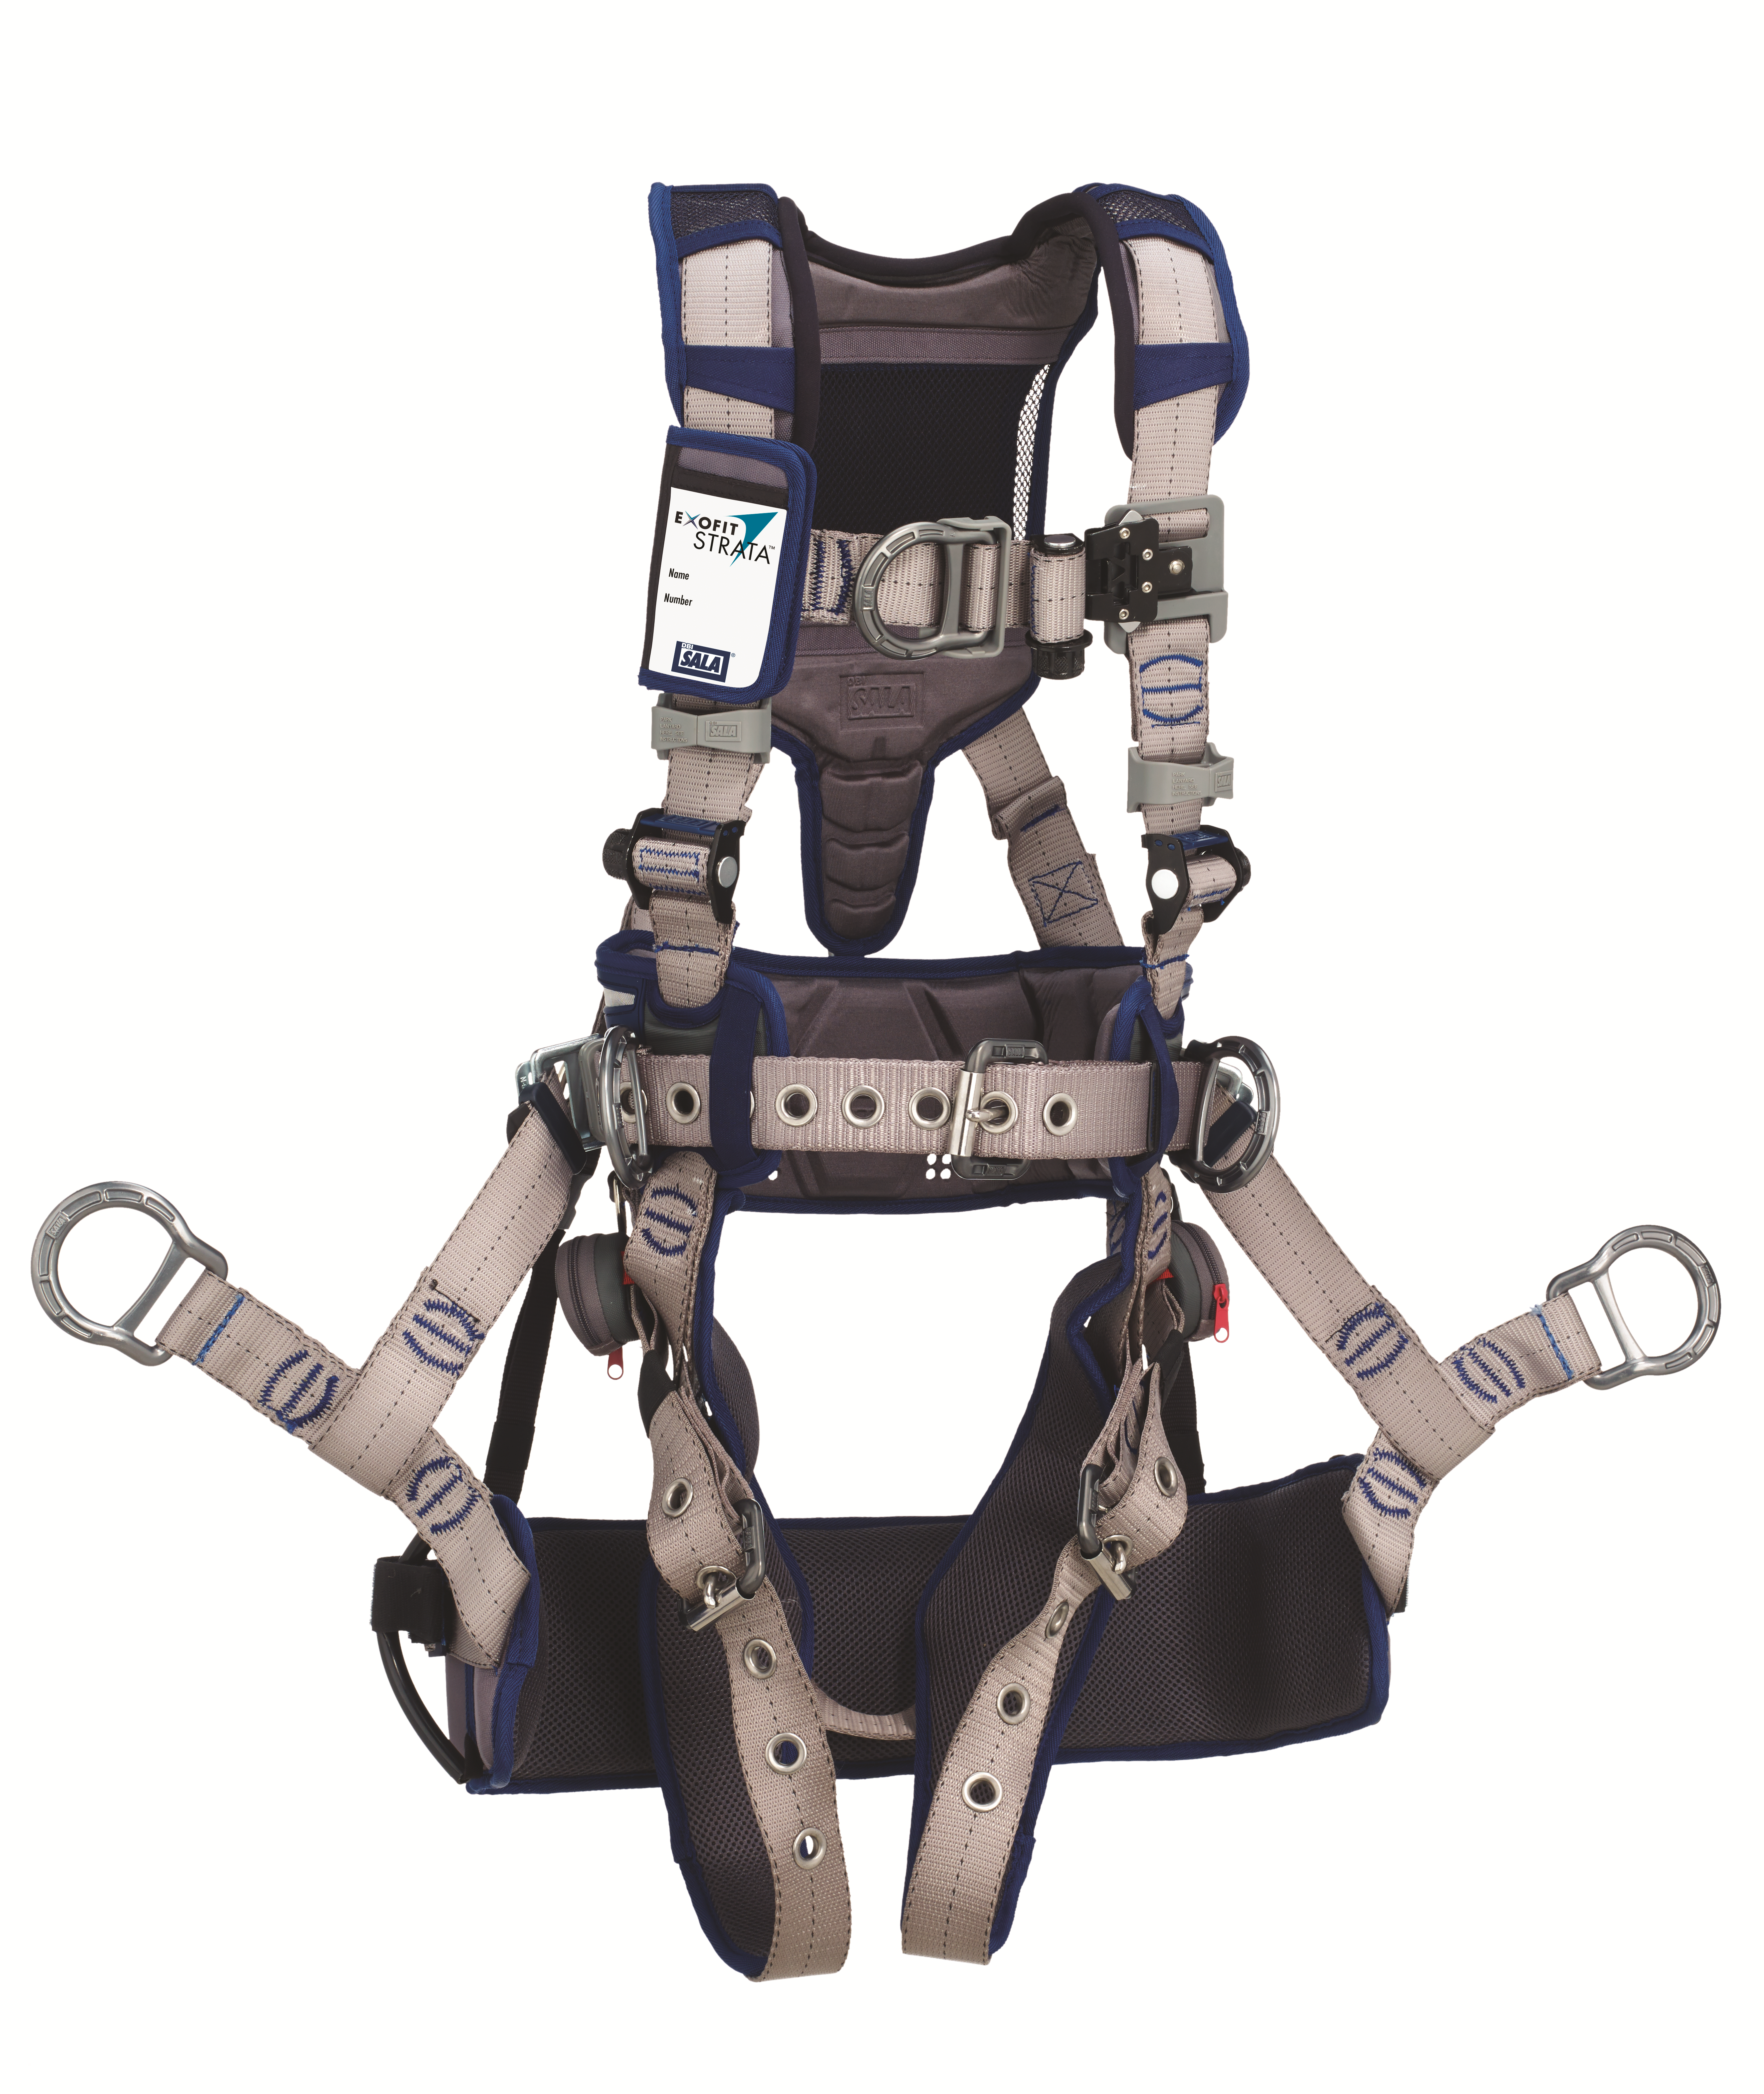 STRATA Tower Climbing Harness, Tongue-Buckle Legs, Side D-Rings, Front